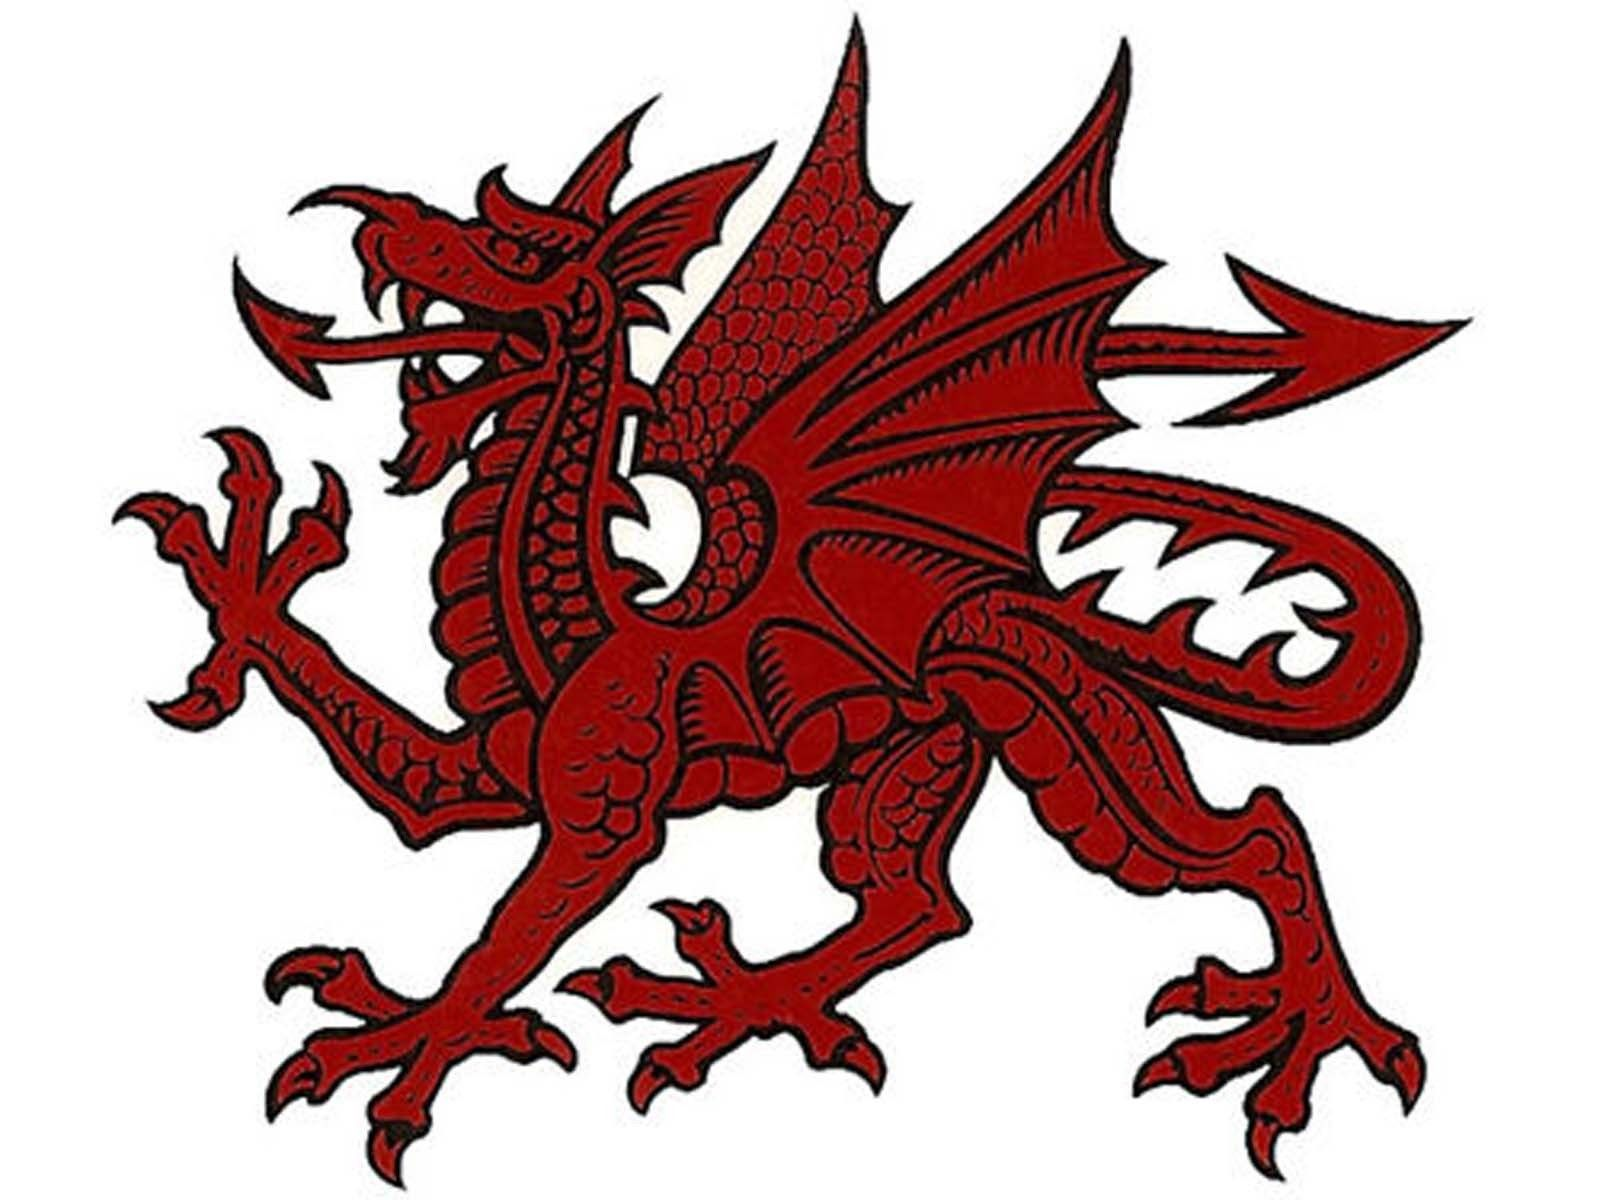 Red Welsh Dragon Select Size Waterslide Ceramic Decals Bx Ebay Red Poppies Poppy Flower Poppies [ 1200 x 1600 Pixel ]